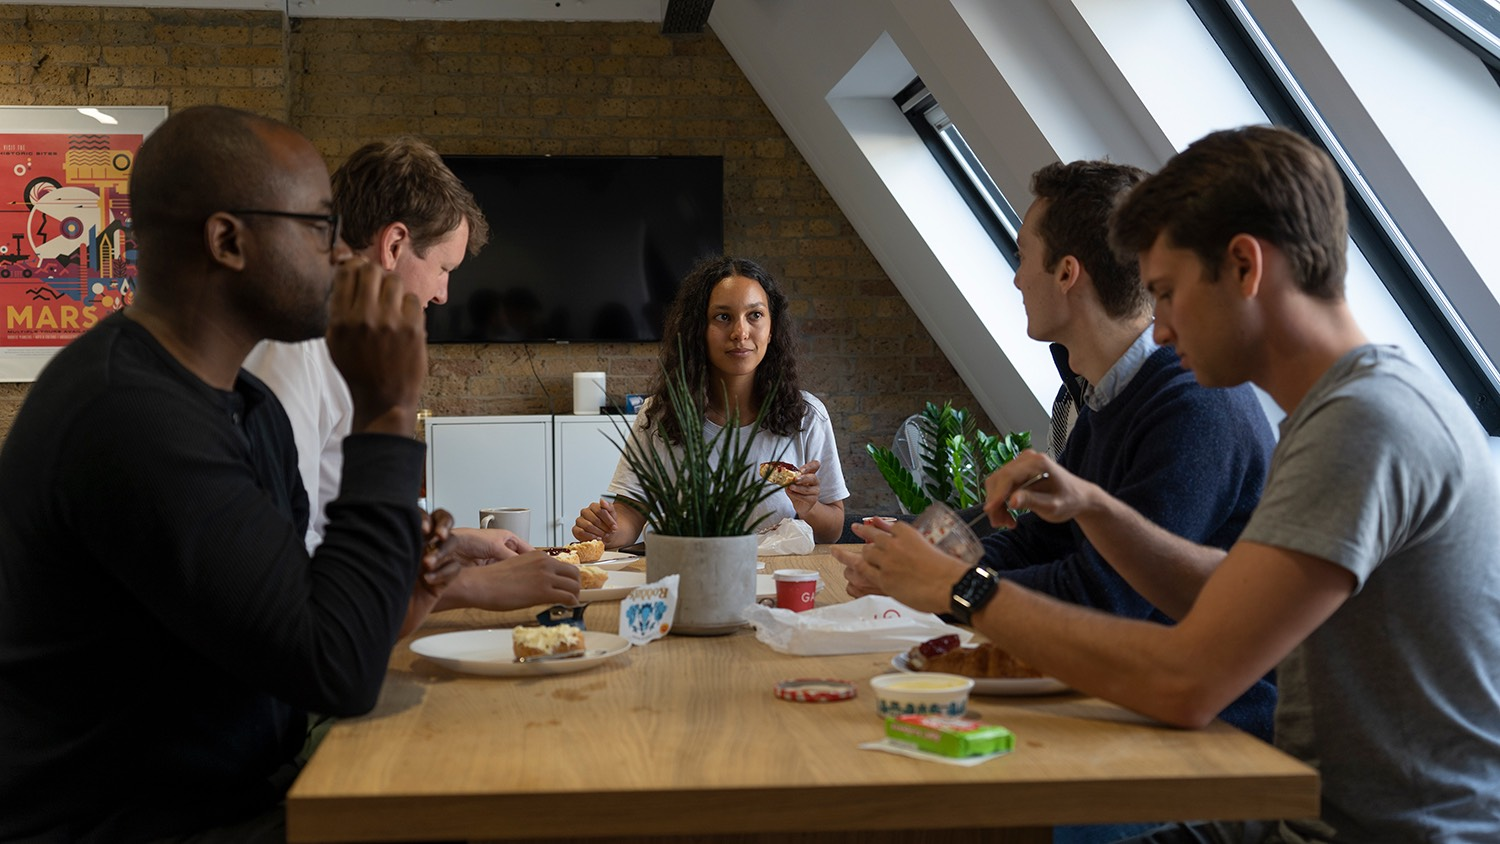 The team sitting at the table and eating